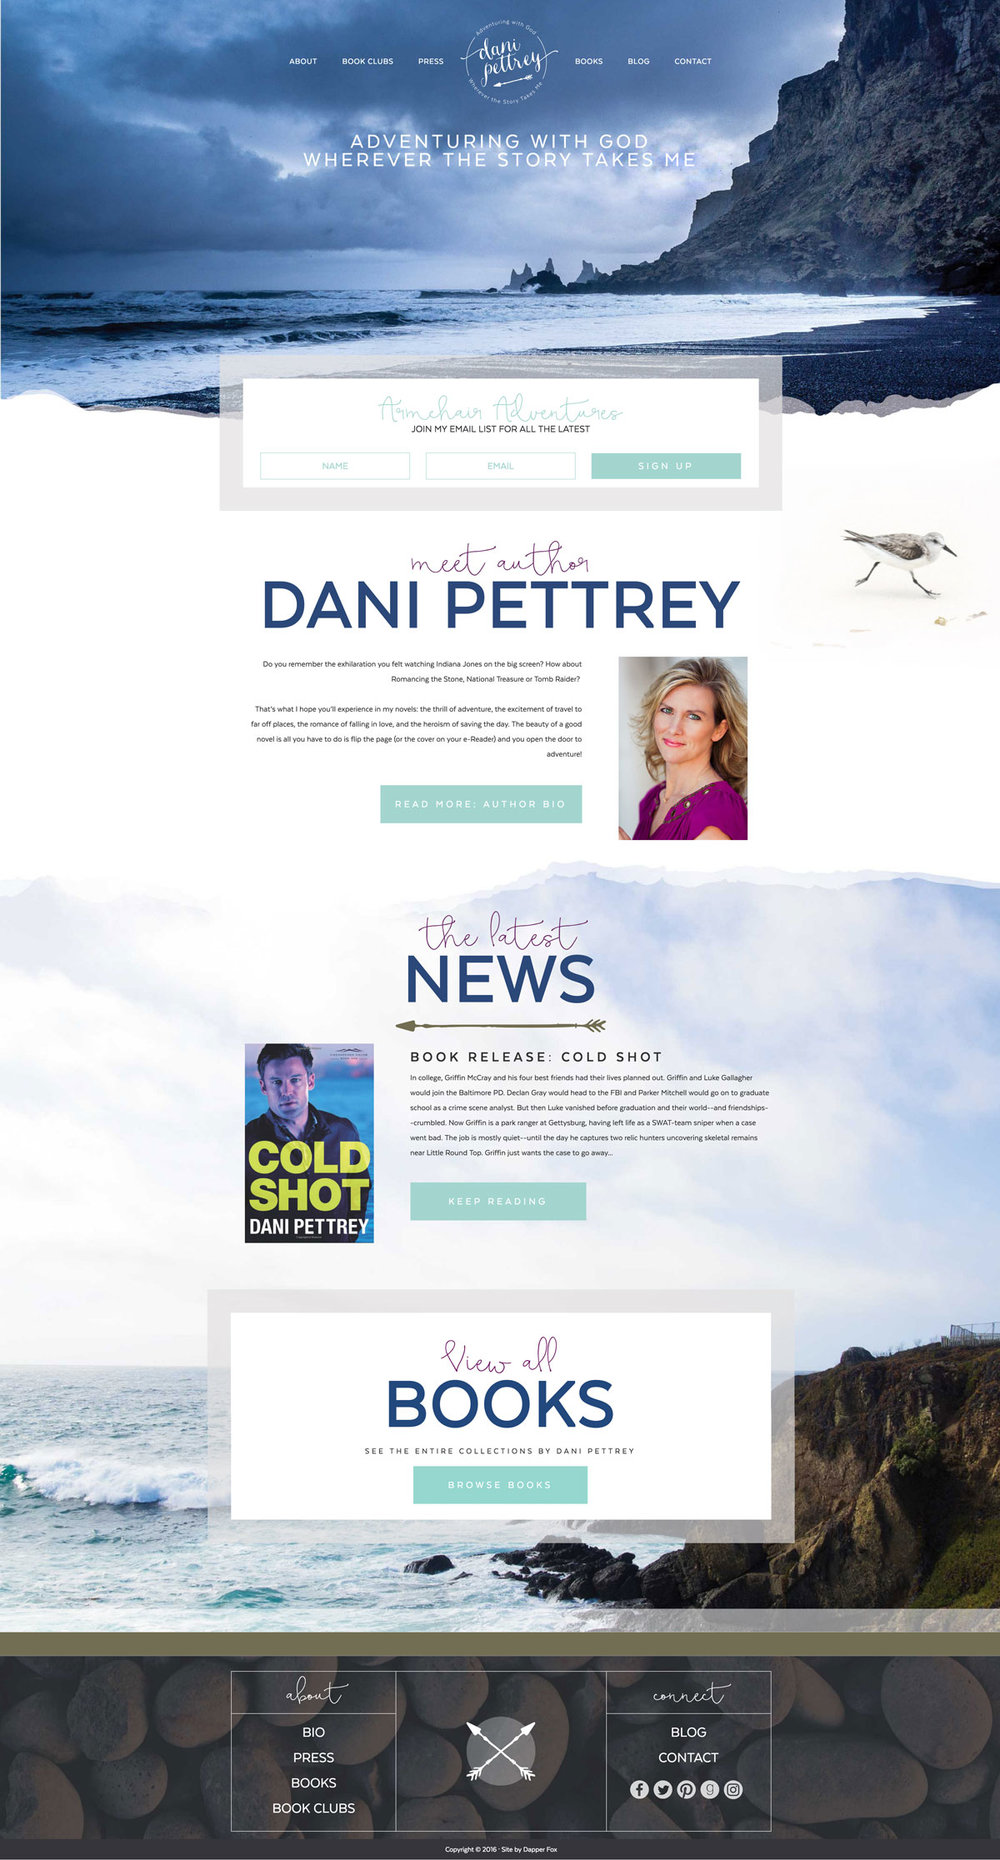 Dani Pettrey Wordpress Website and Branding Design #Coastal #Beach #Ocean #Design #Modern